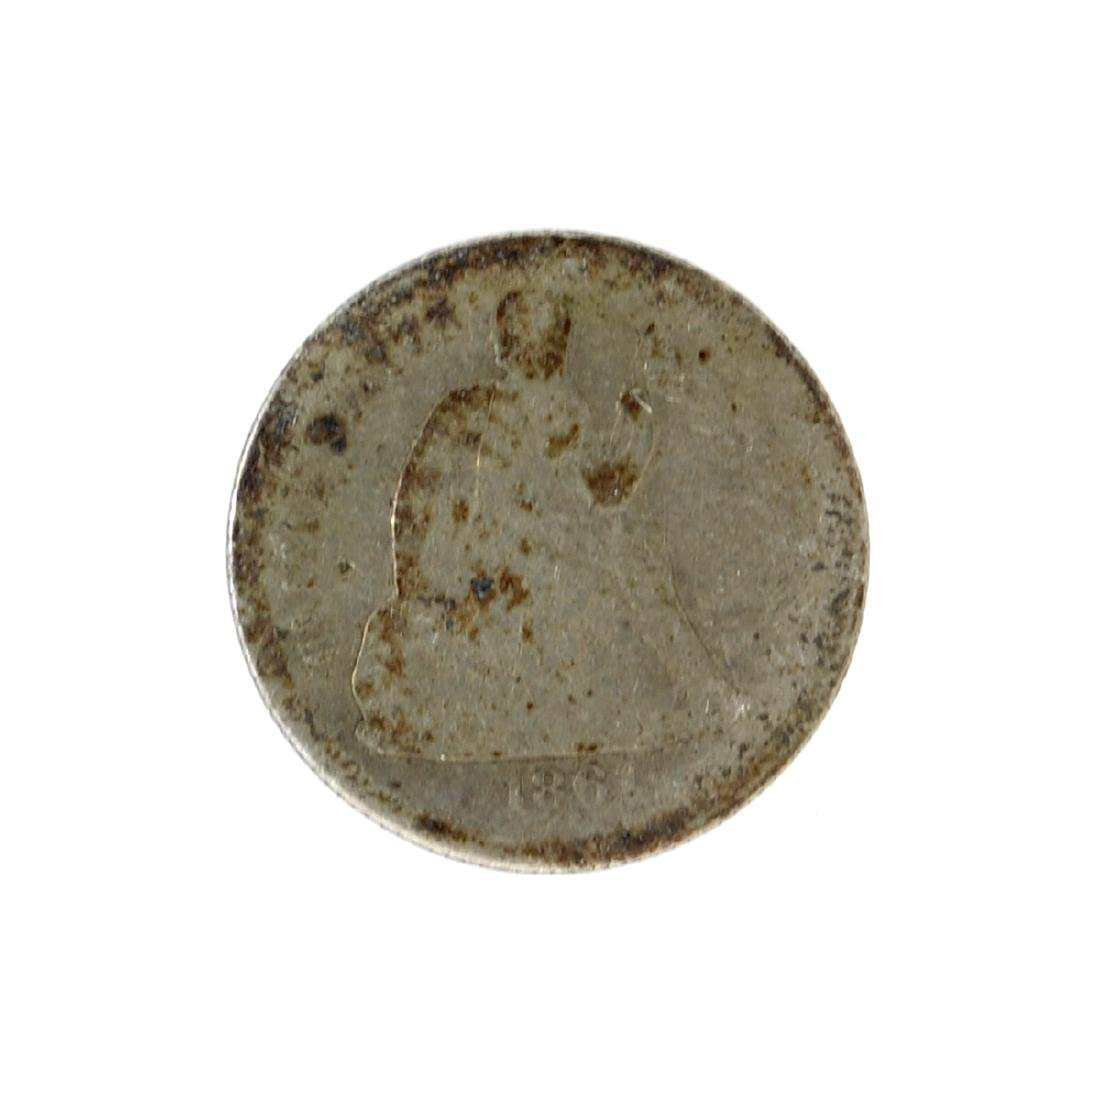 1861 Liberty Seated Dime Coin